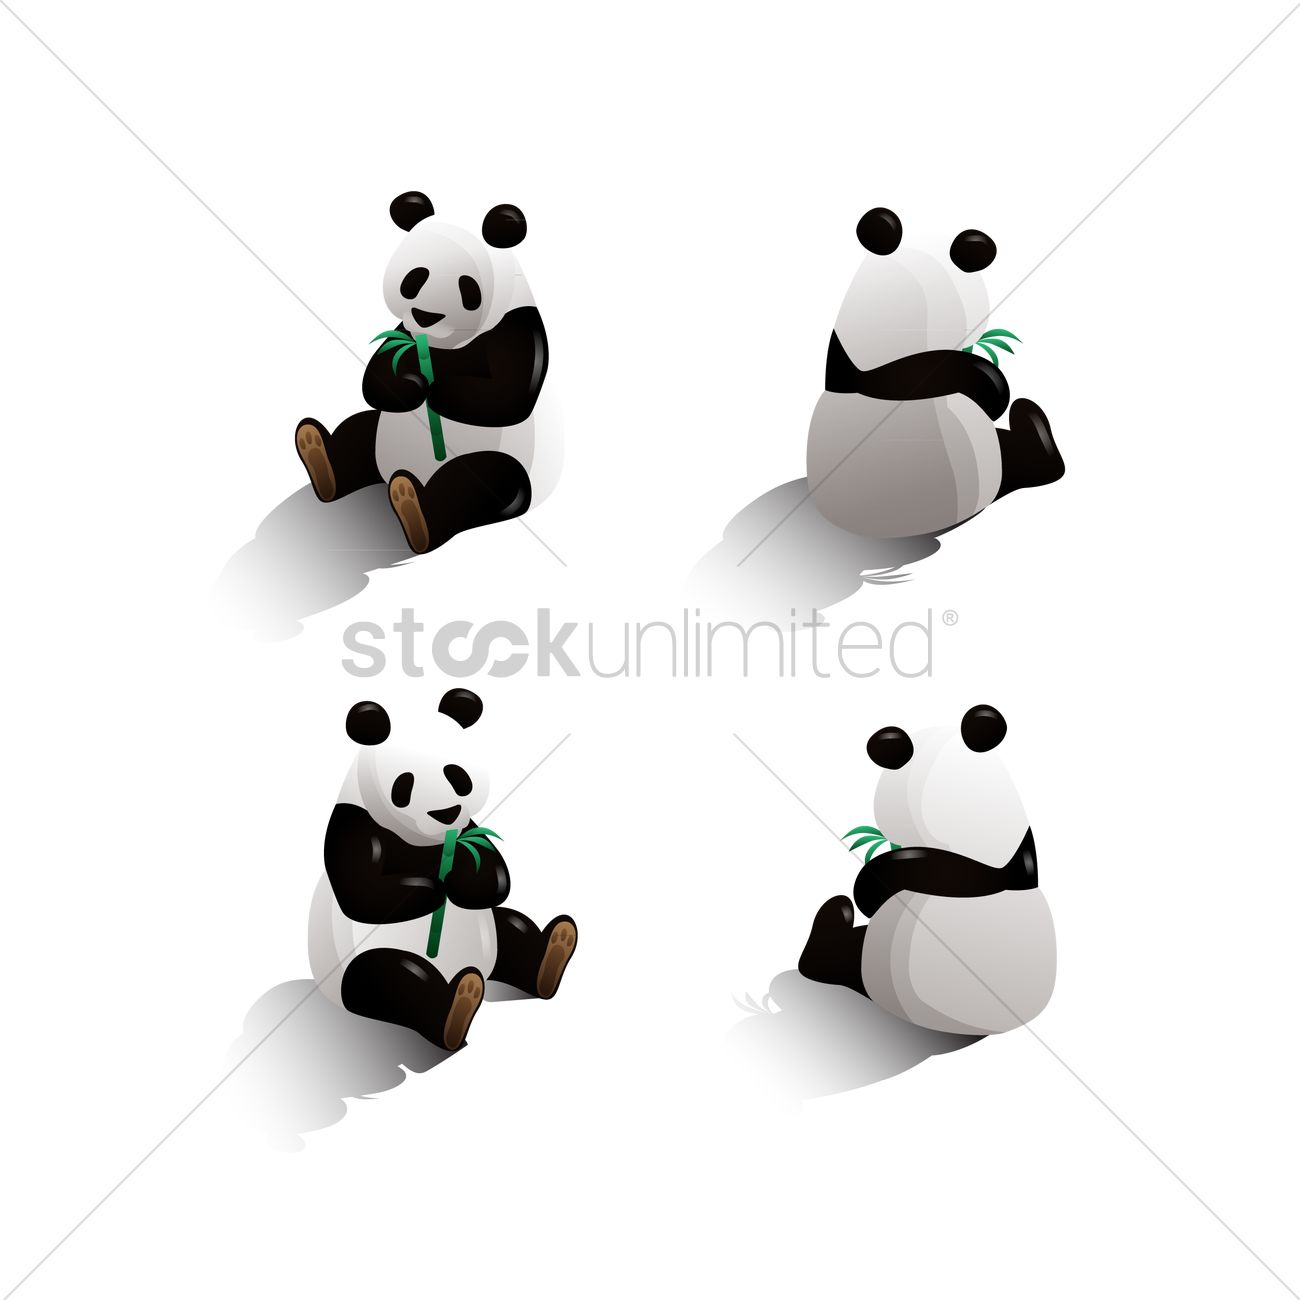 isometric panda vector image 1551943 stockunlimited